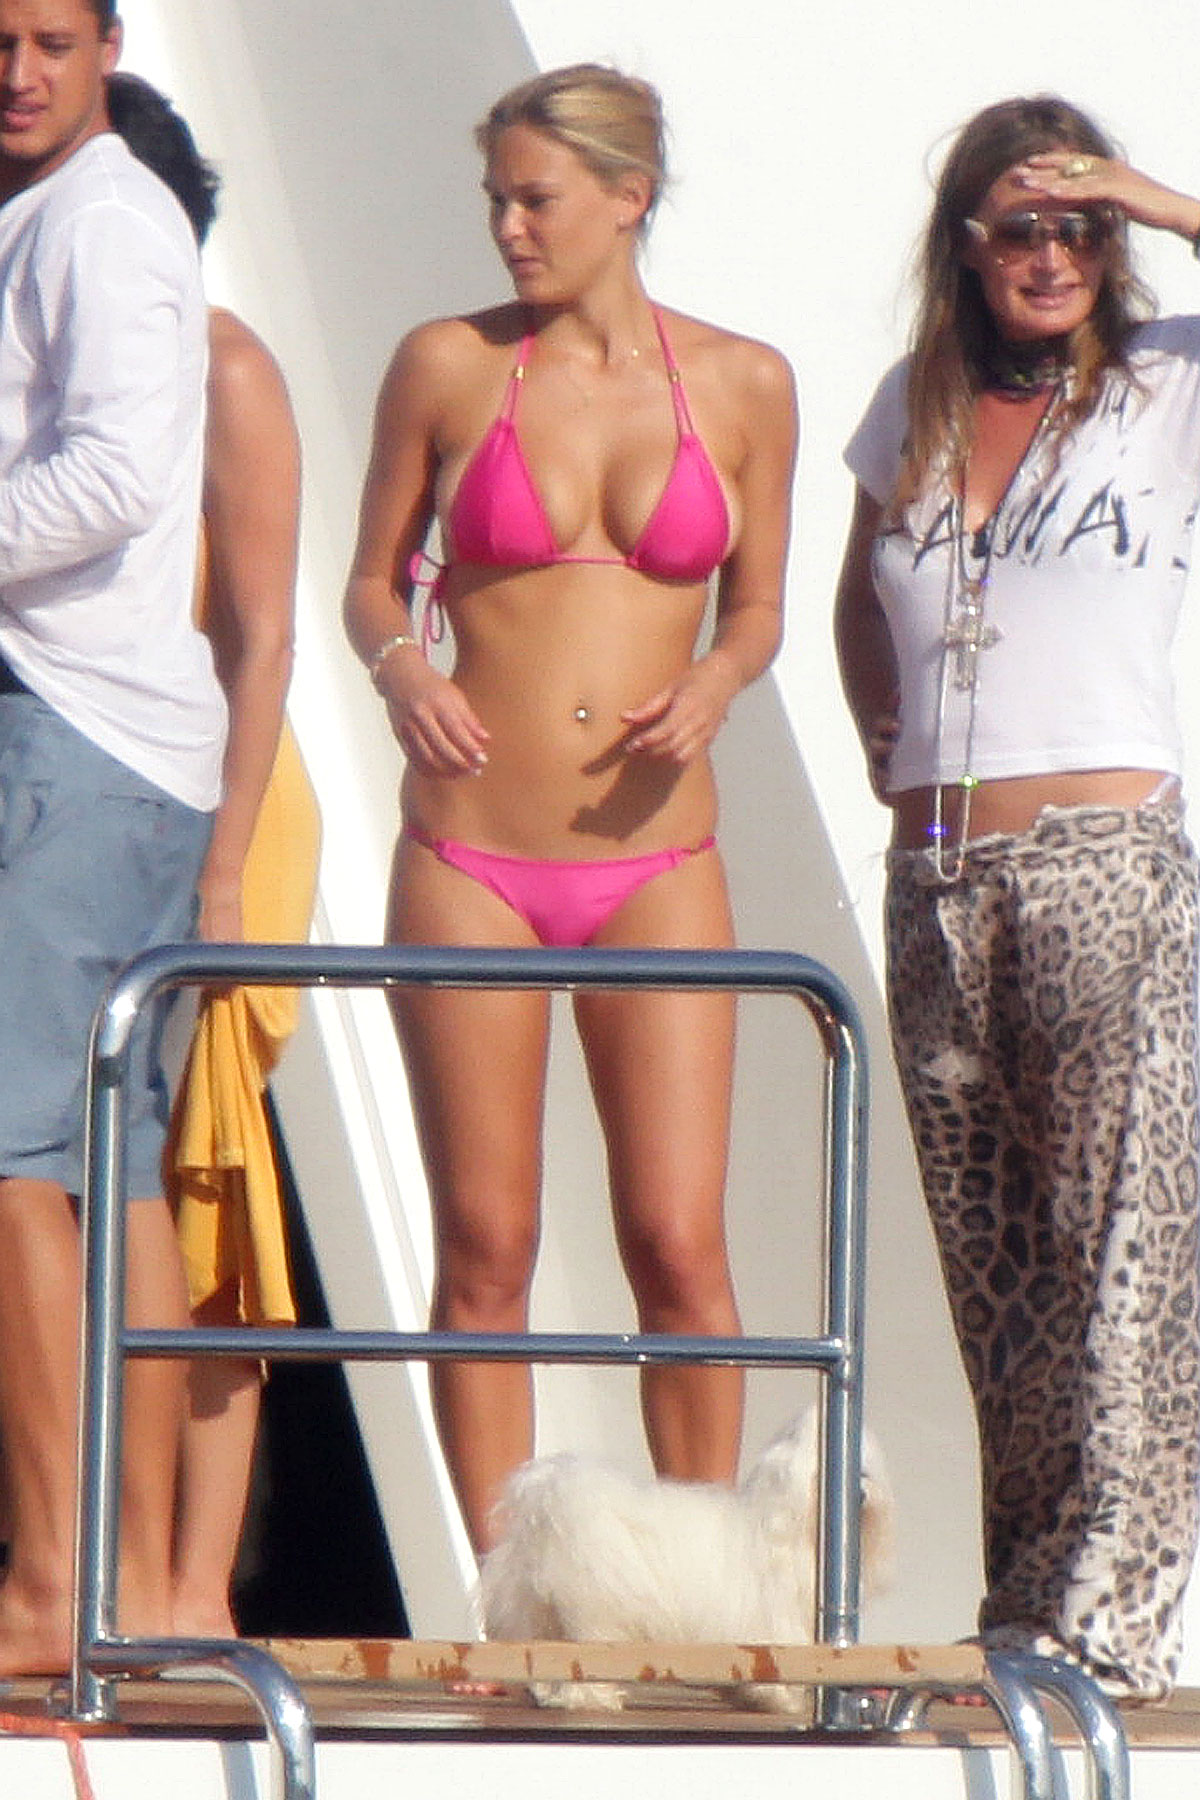 Bar Refaeli Bikinis on a Boat (PHOTOS)